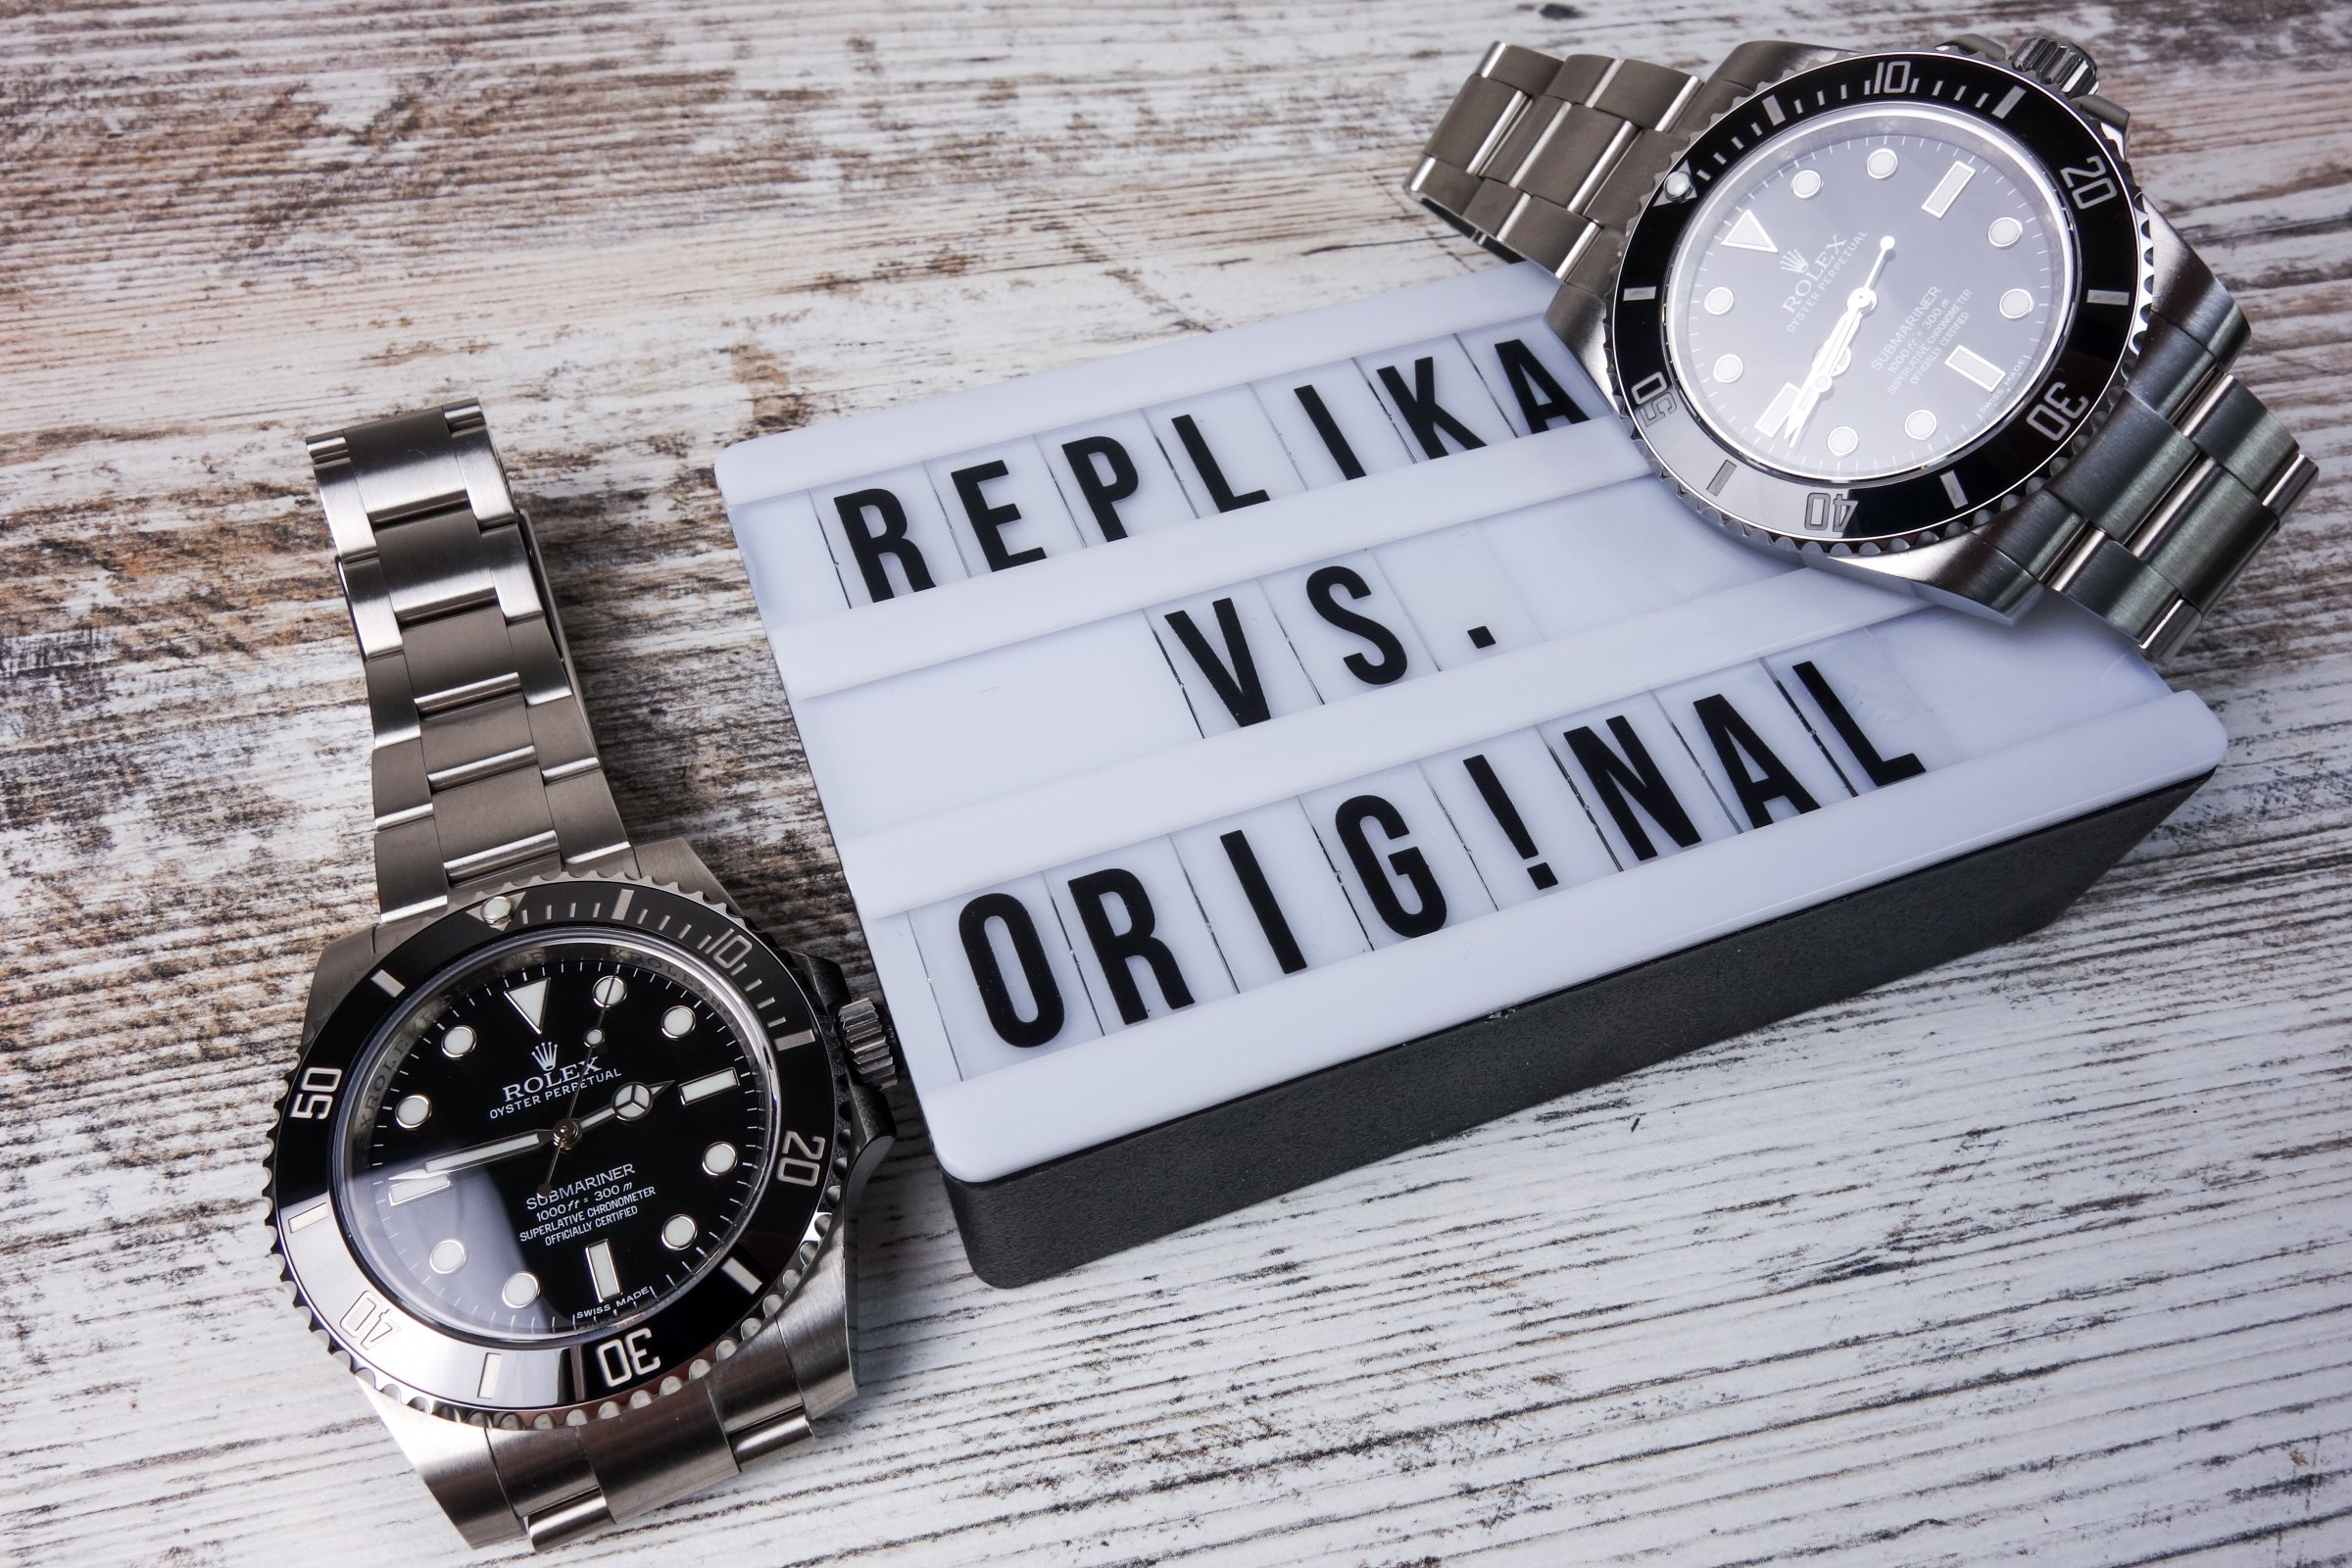 Rolex Submariner Original vs. Replica Noob v7